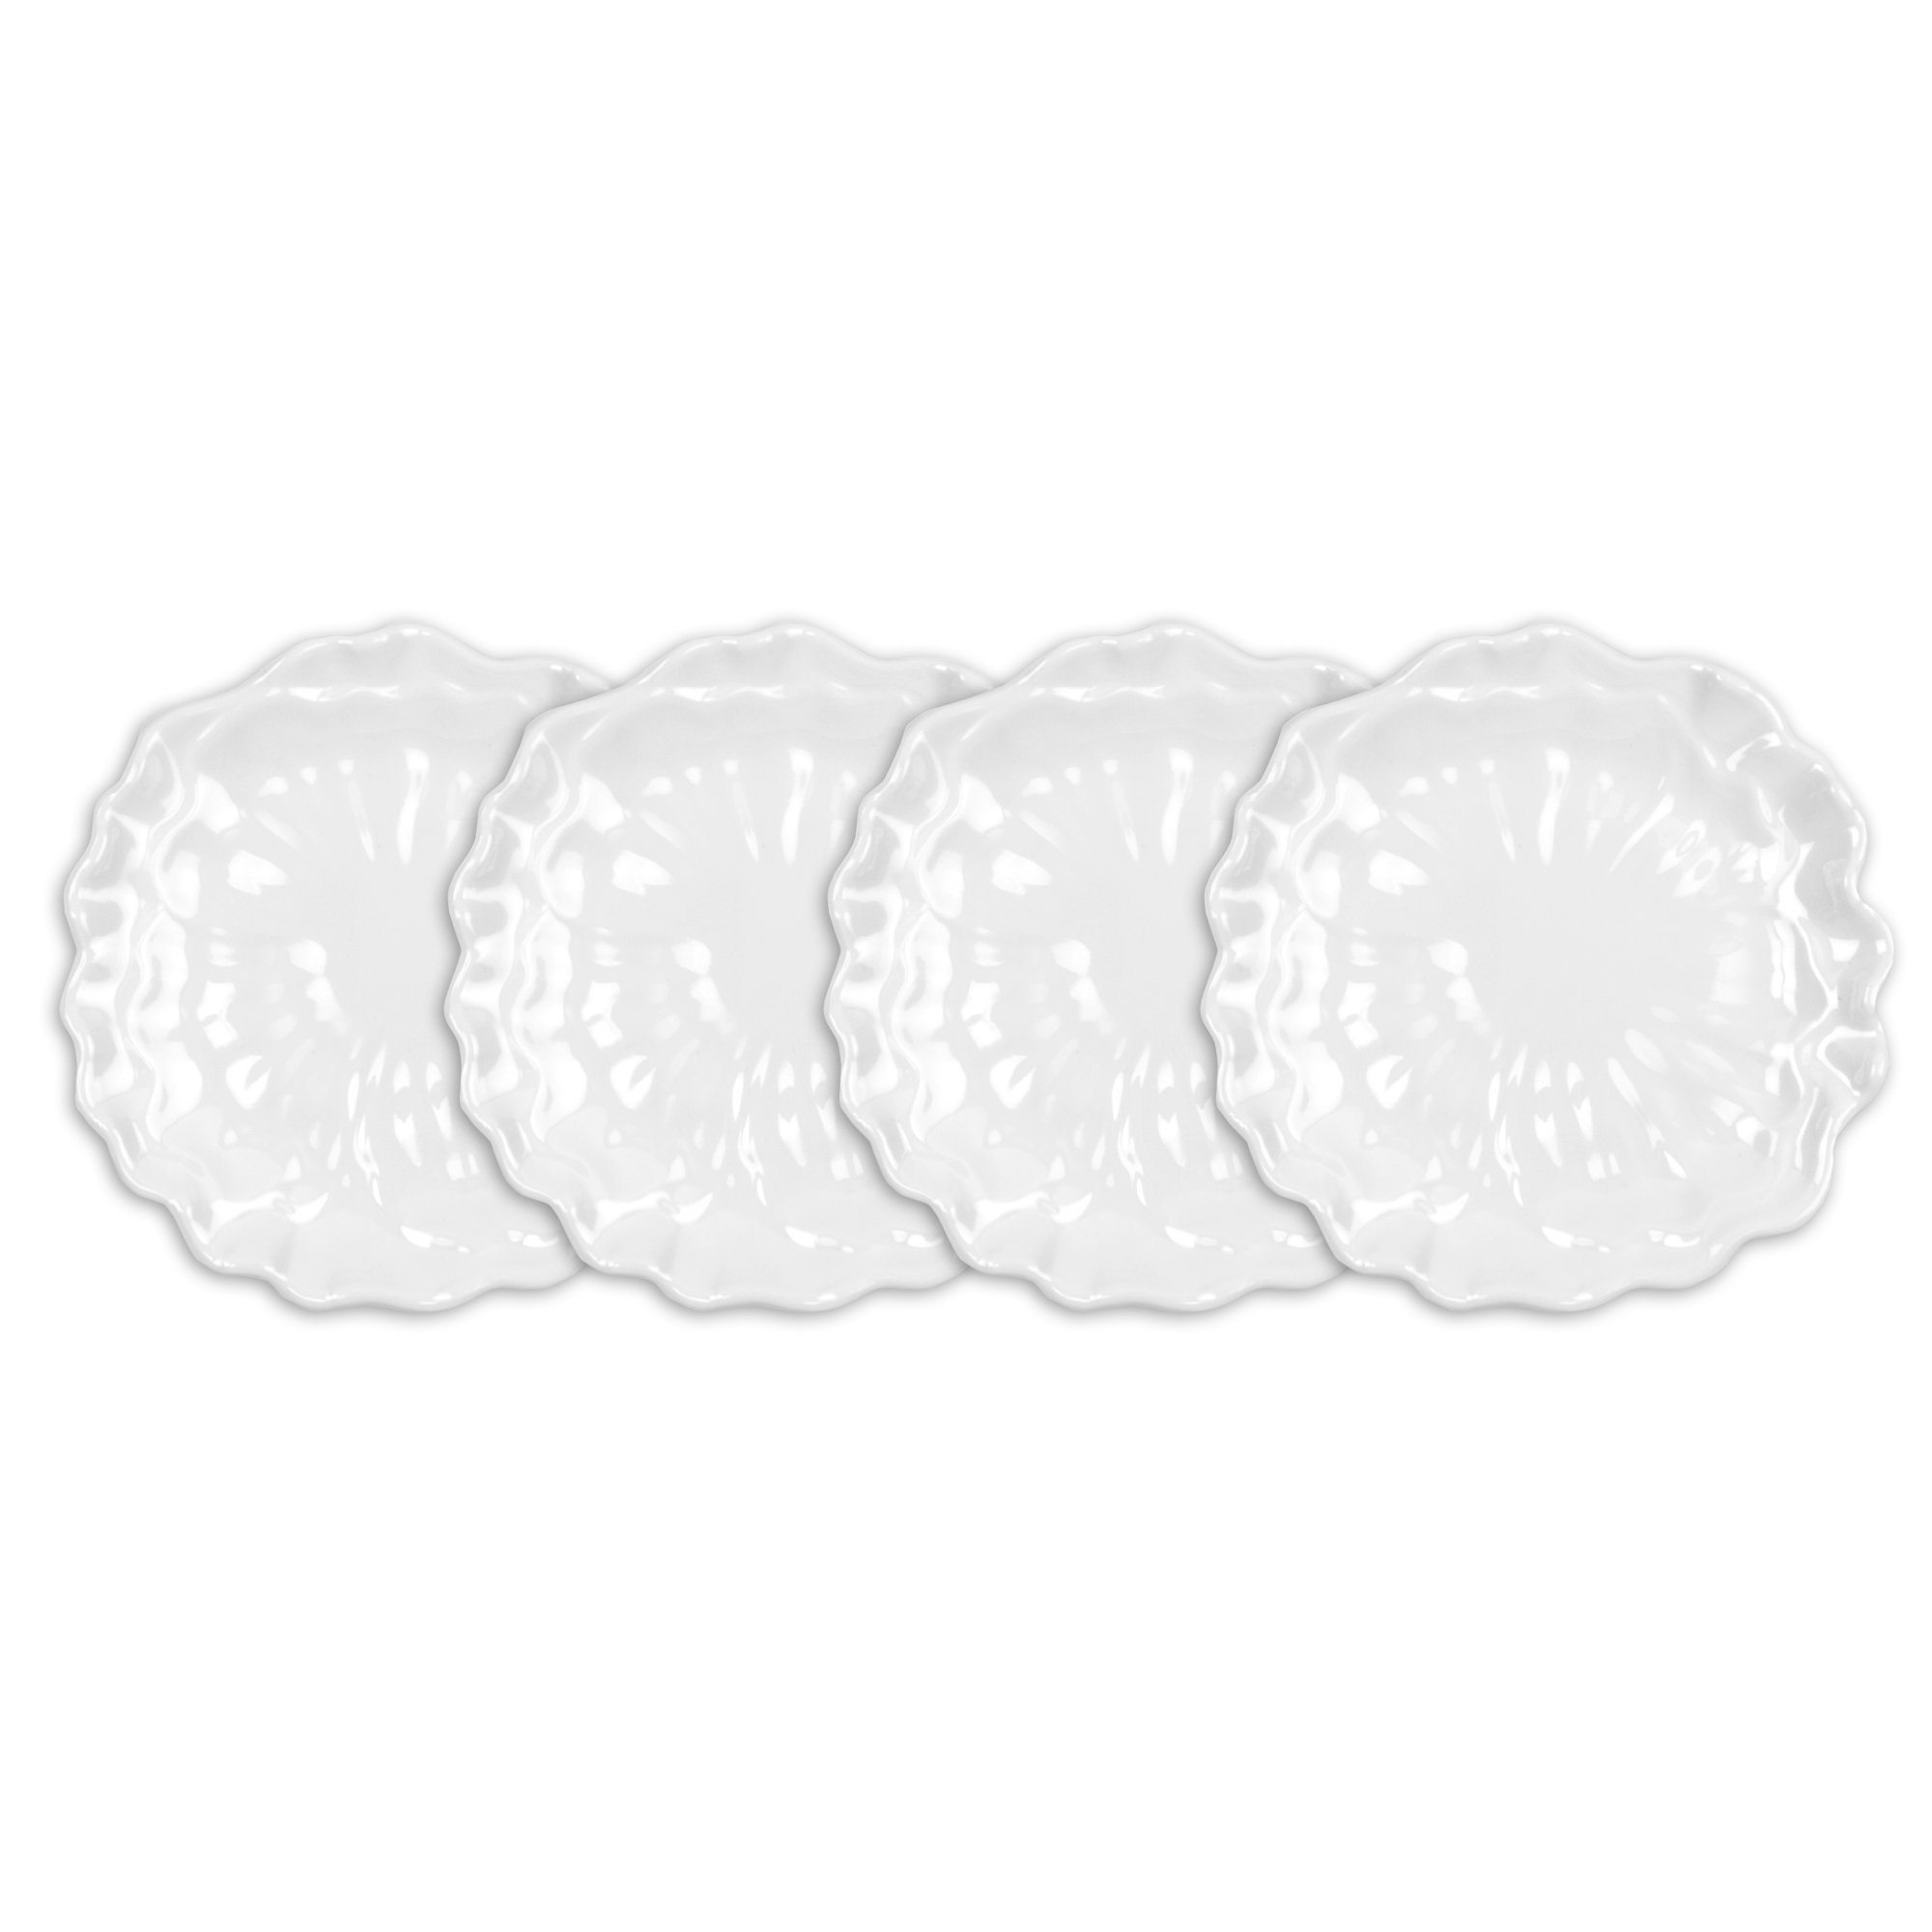 Q Squared Peony BPA-Free Melamine Appetizer Plate, 5-1/2 Inches, Set of 4, White